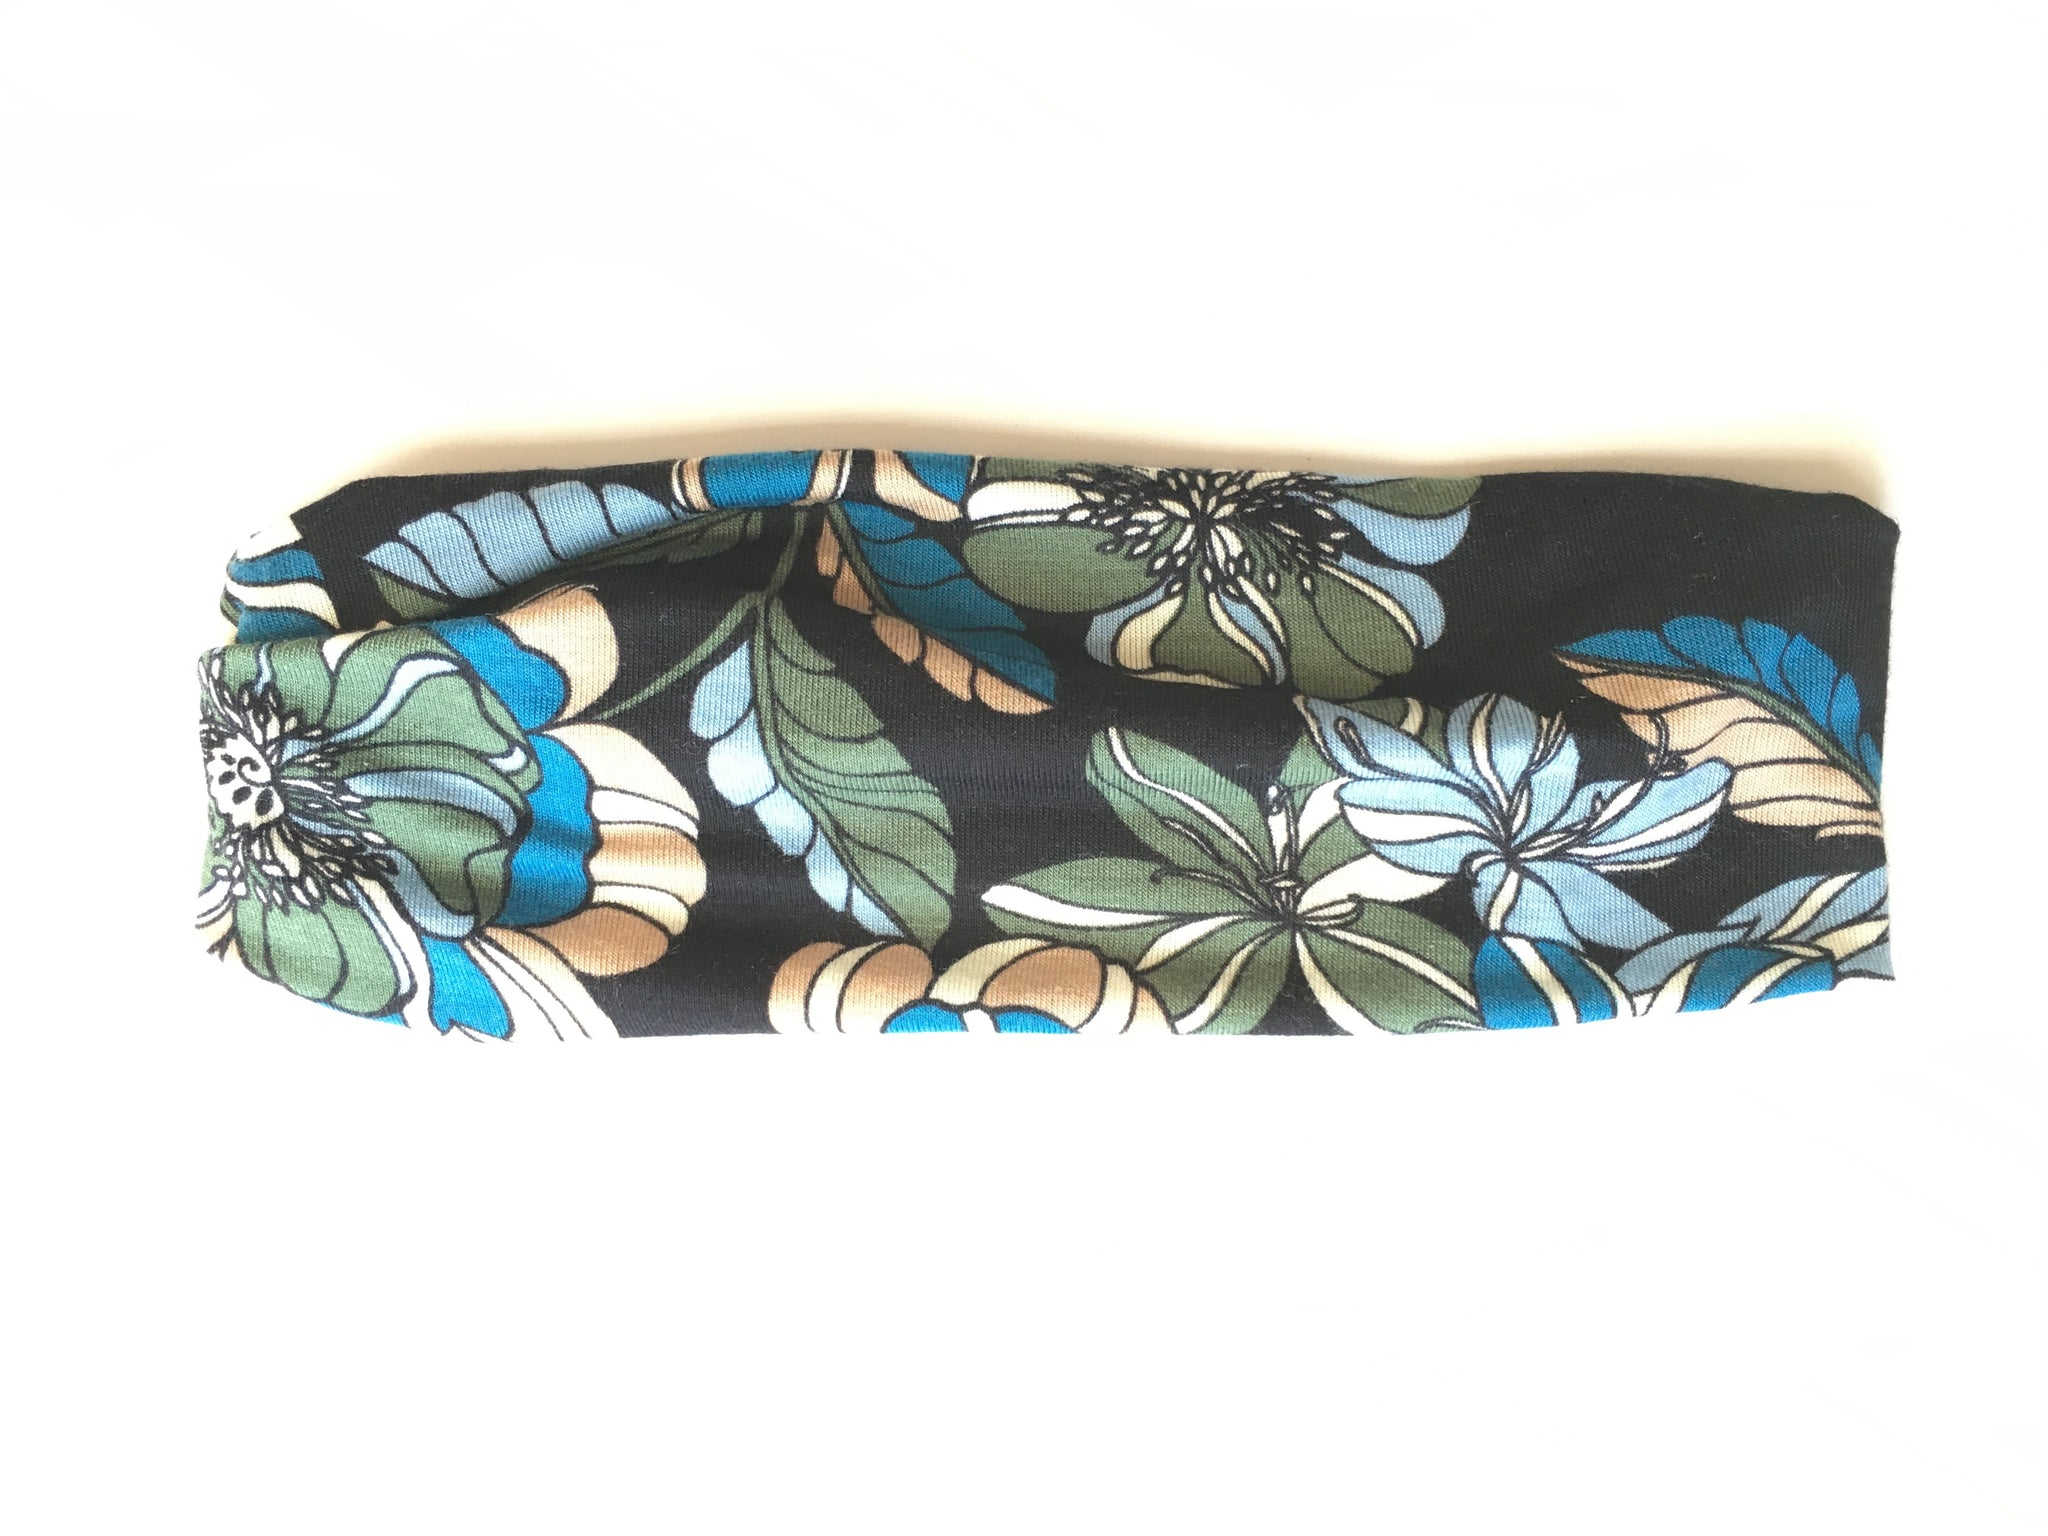 Headband - Retro Blue Olive Floral